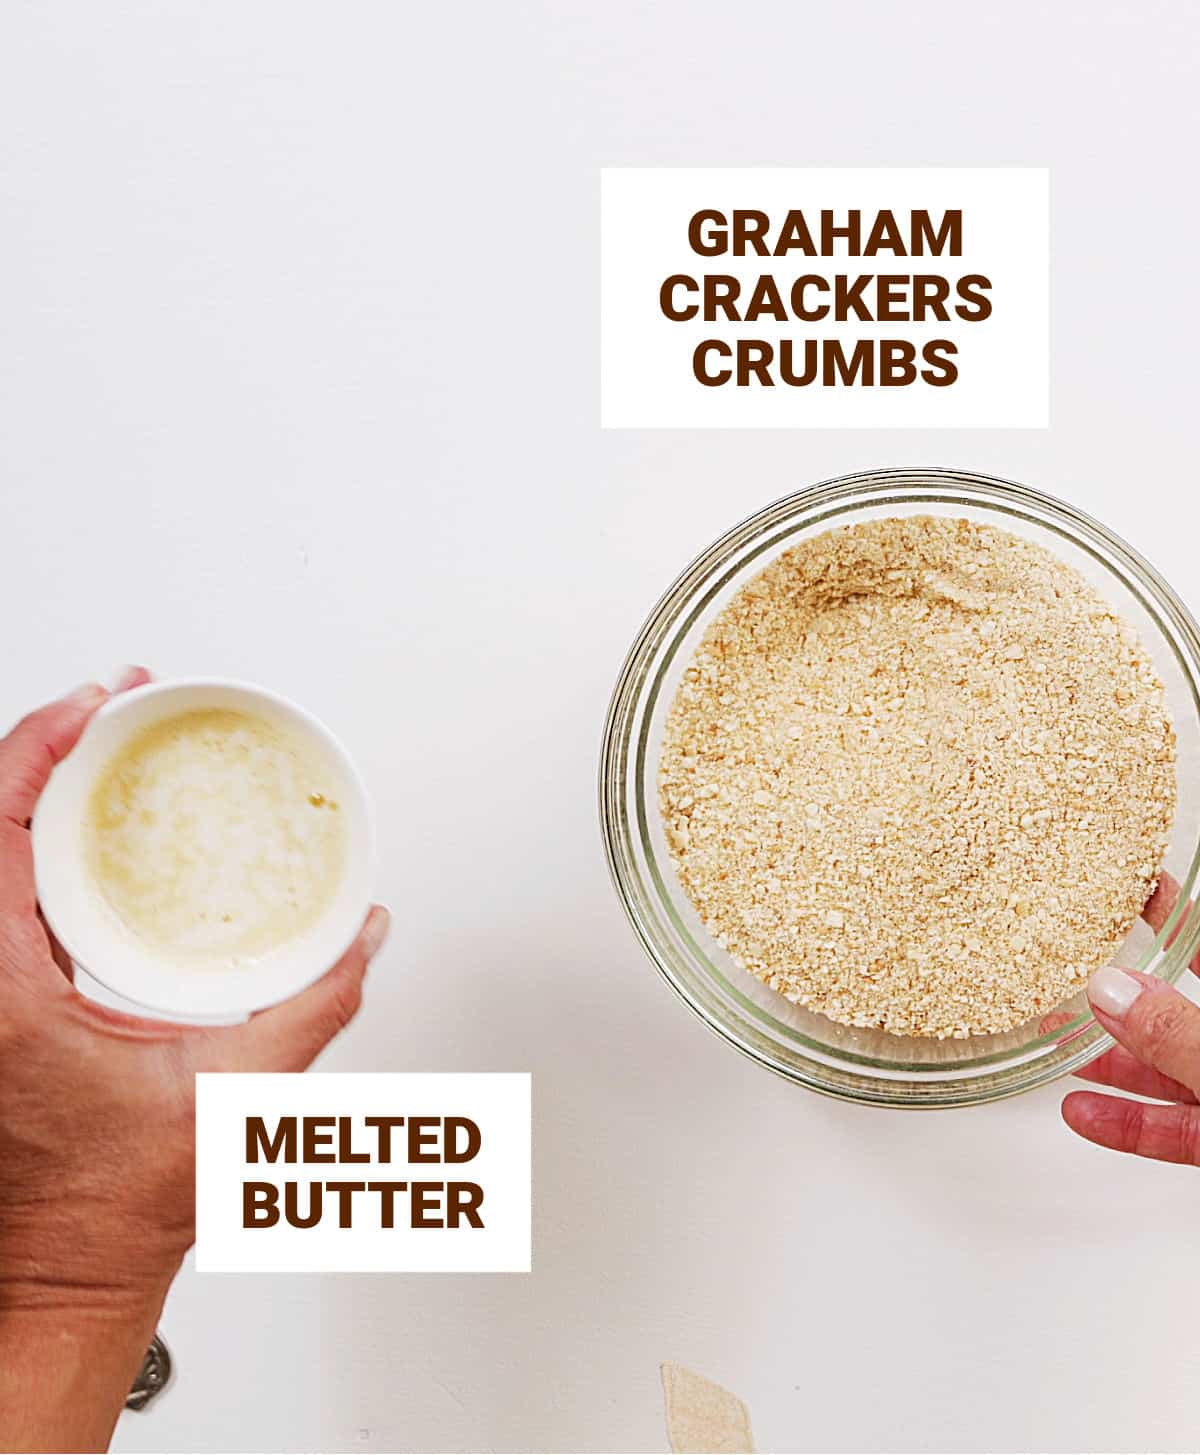 Overview of white surface with bowl containing cookie crumbs and hand holding cup with melted butter